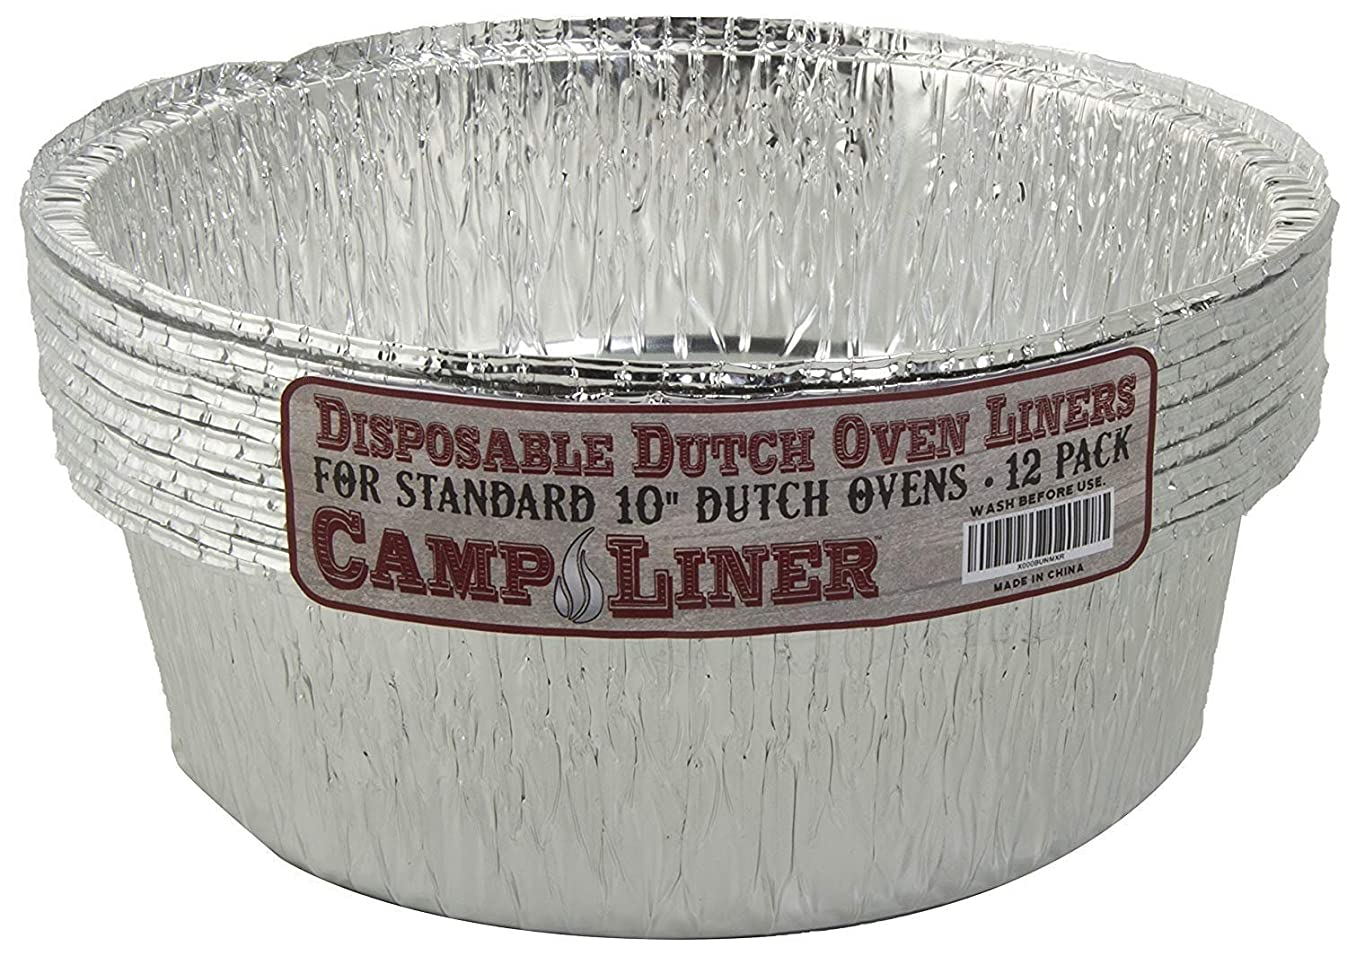 "Disposable Dutch Oven Foil Liner, 12 Pack of 10"" 4Q liners, No more Cleaning, Seasoning your Dutch ovens. Lodge, Camp Chef."